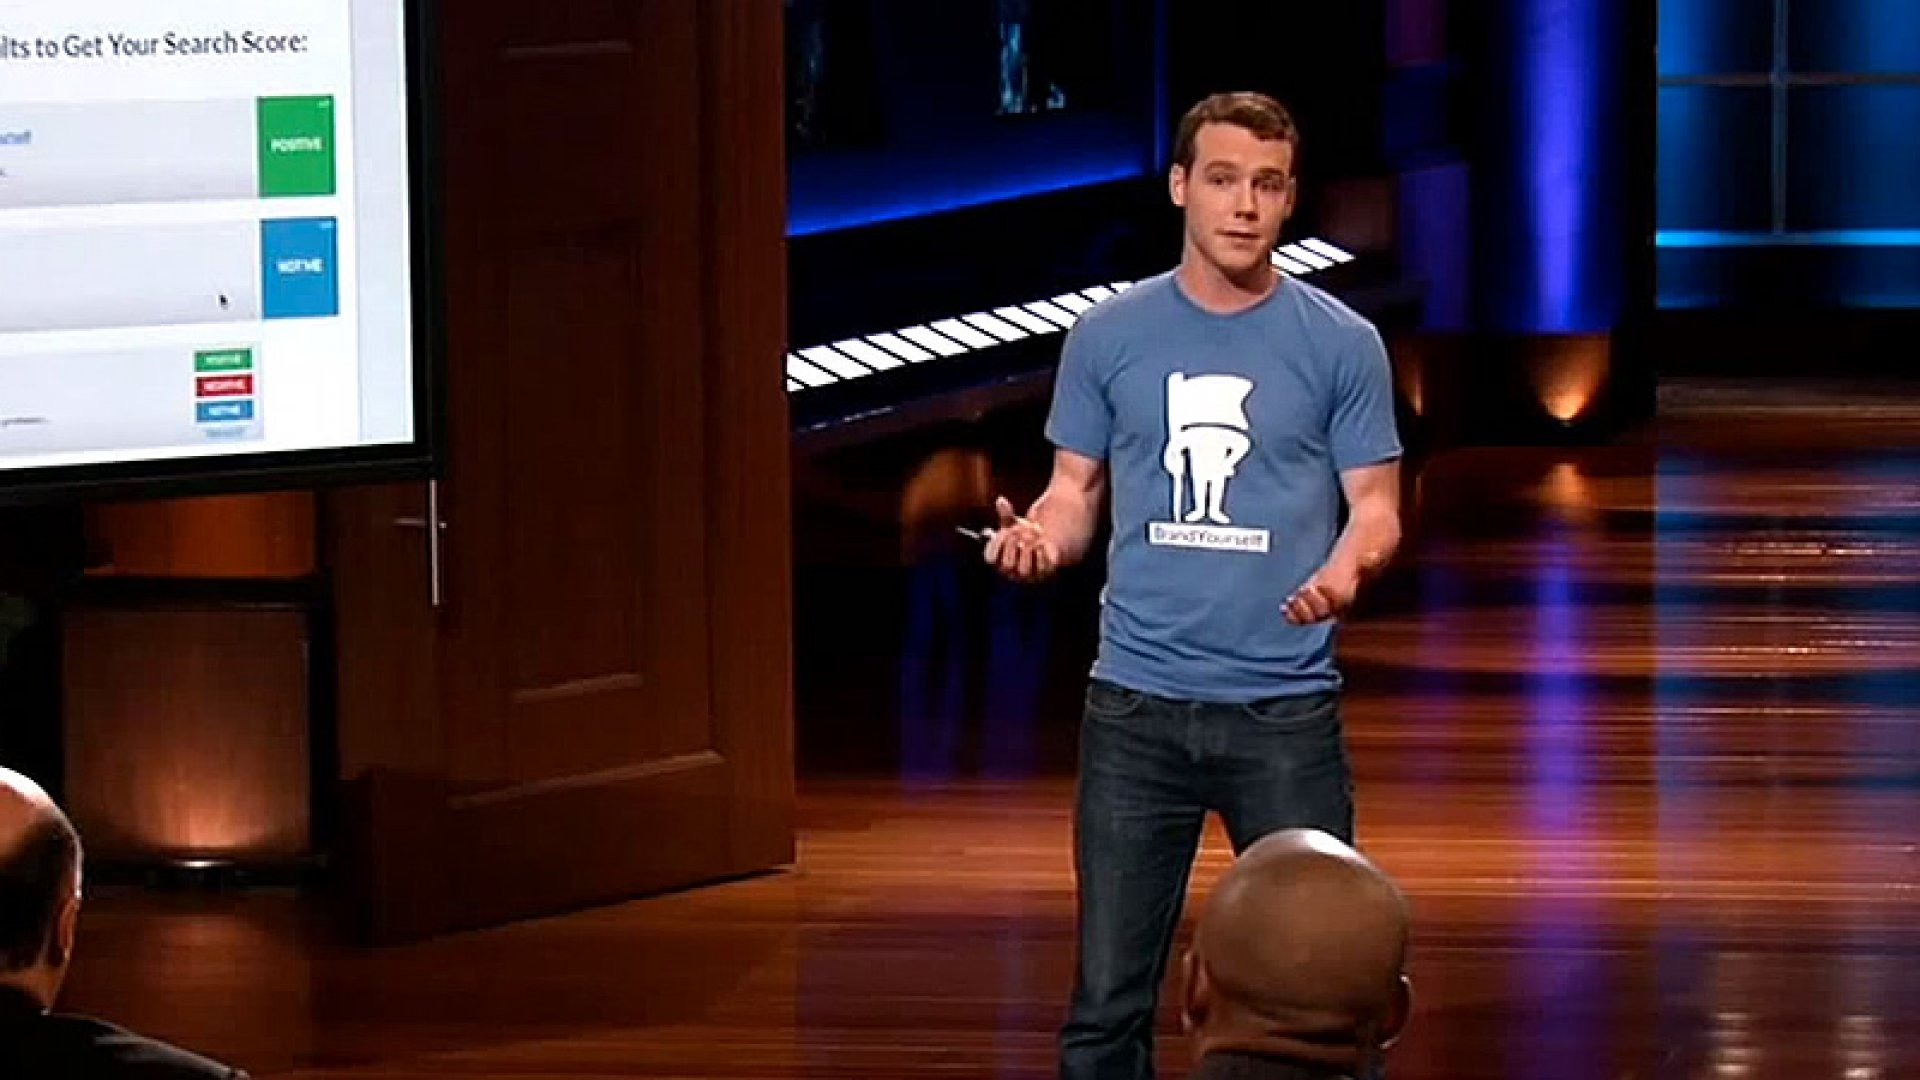 3 Tips From the Founder Who Turned Down $2 Million on 'Shark Tank'